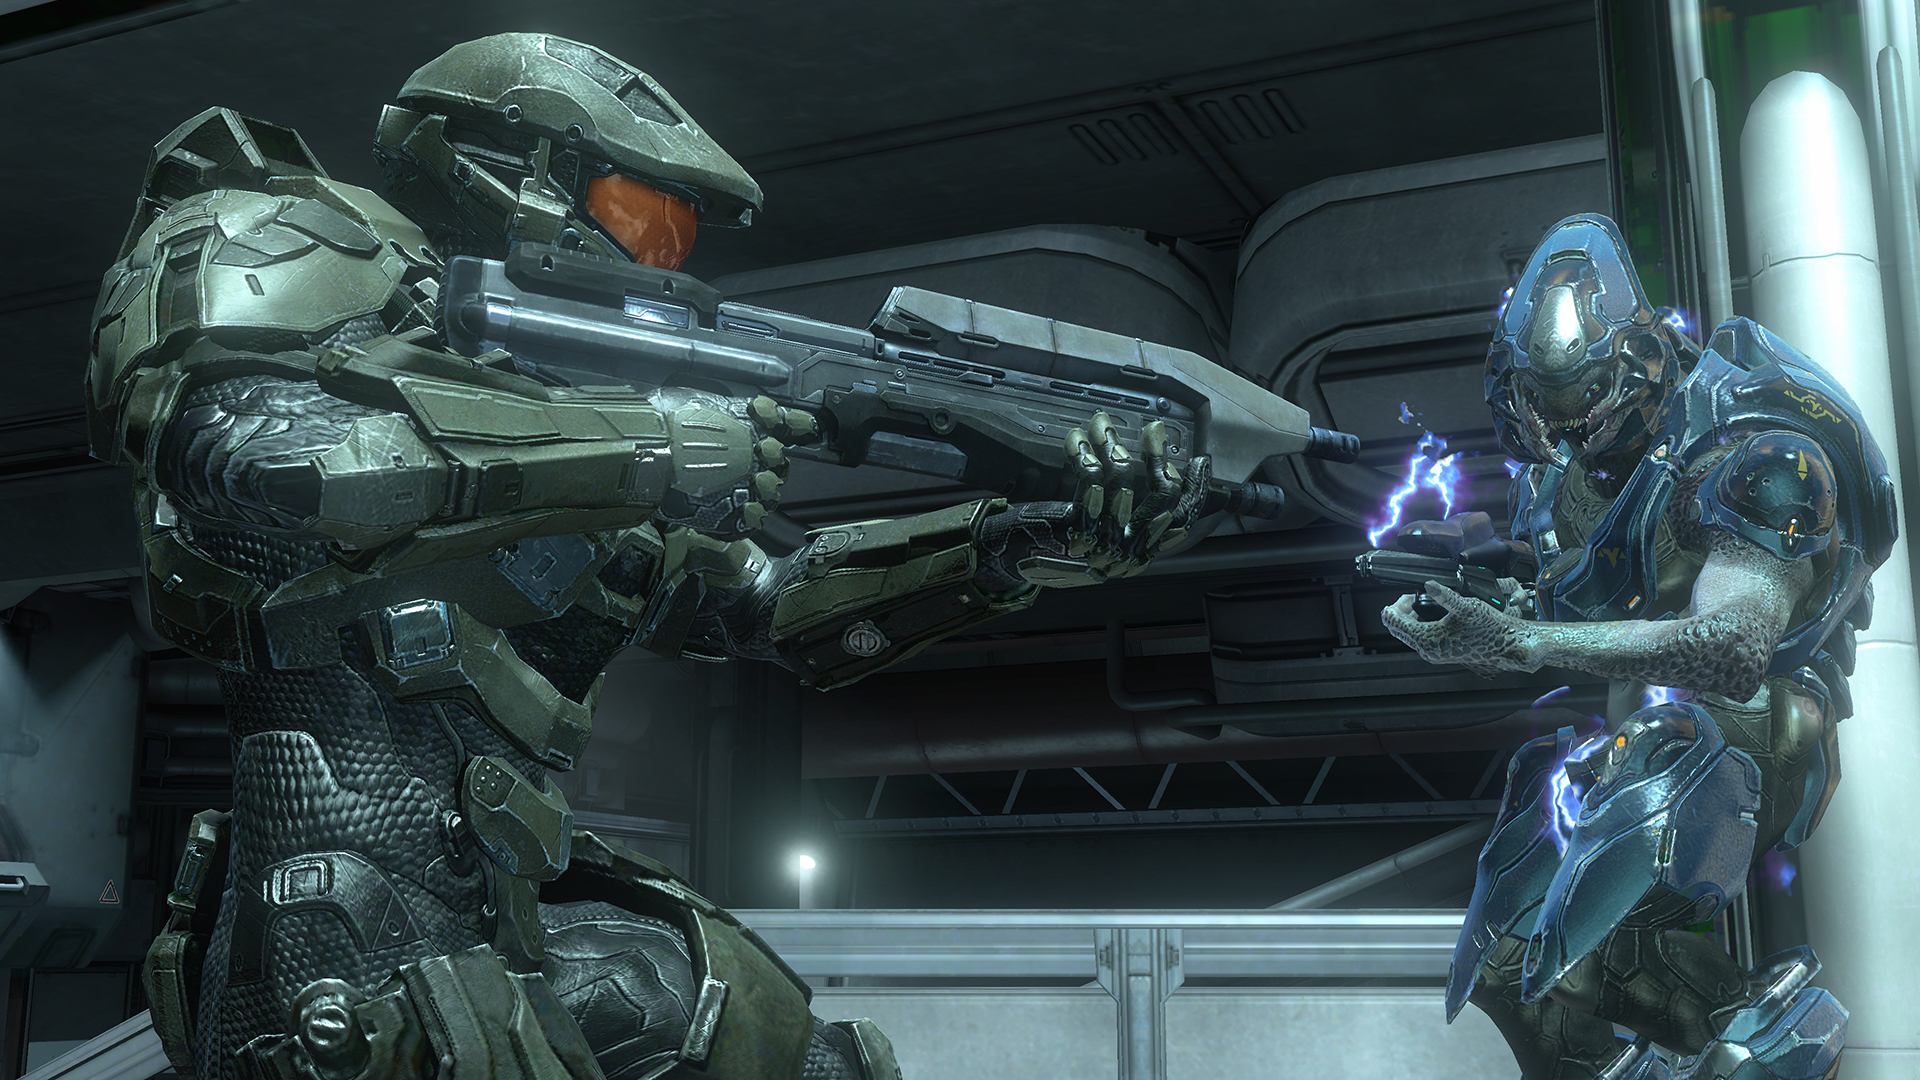 Halo 4 public testing is expected to begin this month